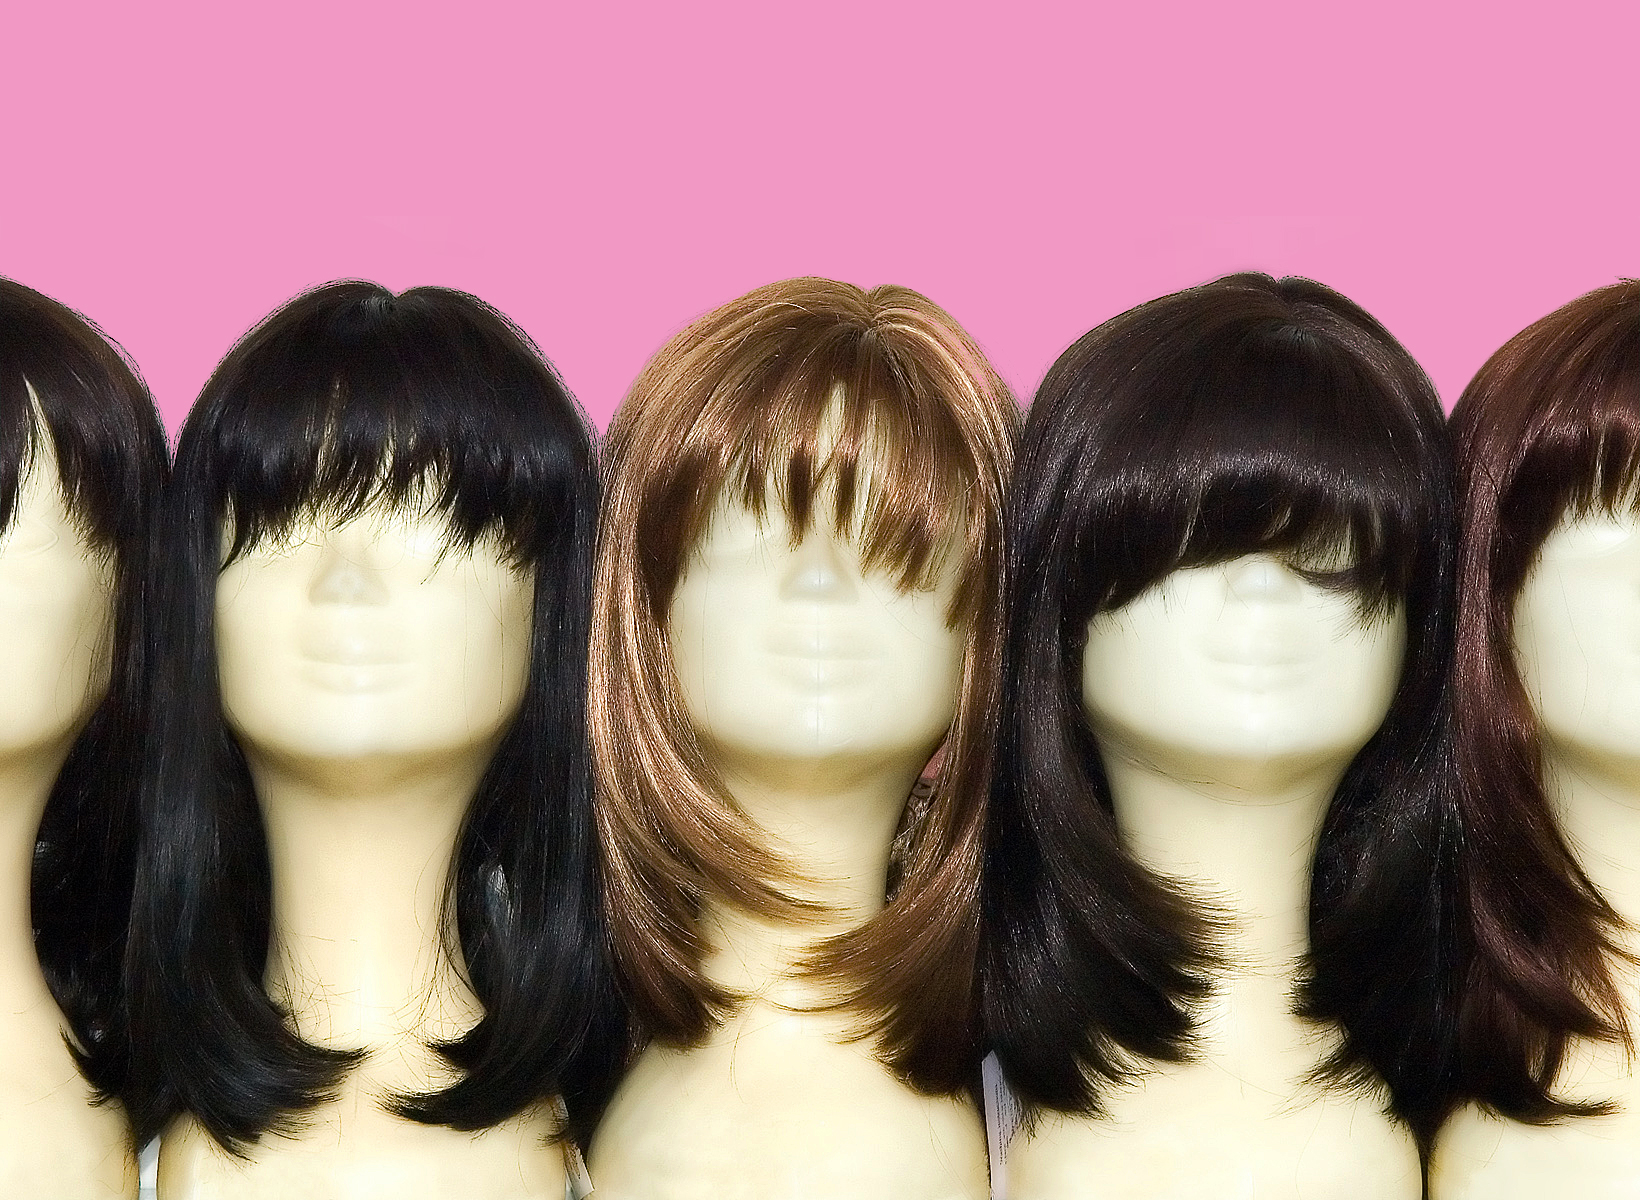 Wigs For Cancer Patients: What Finding The